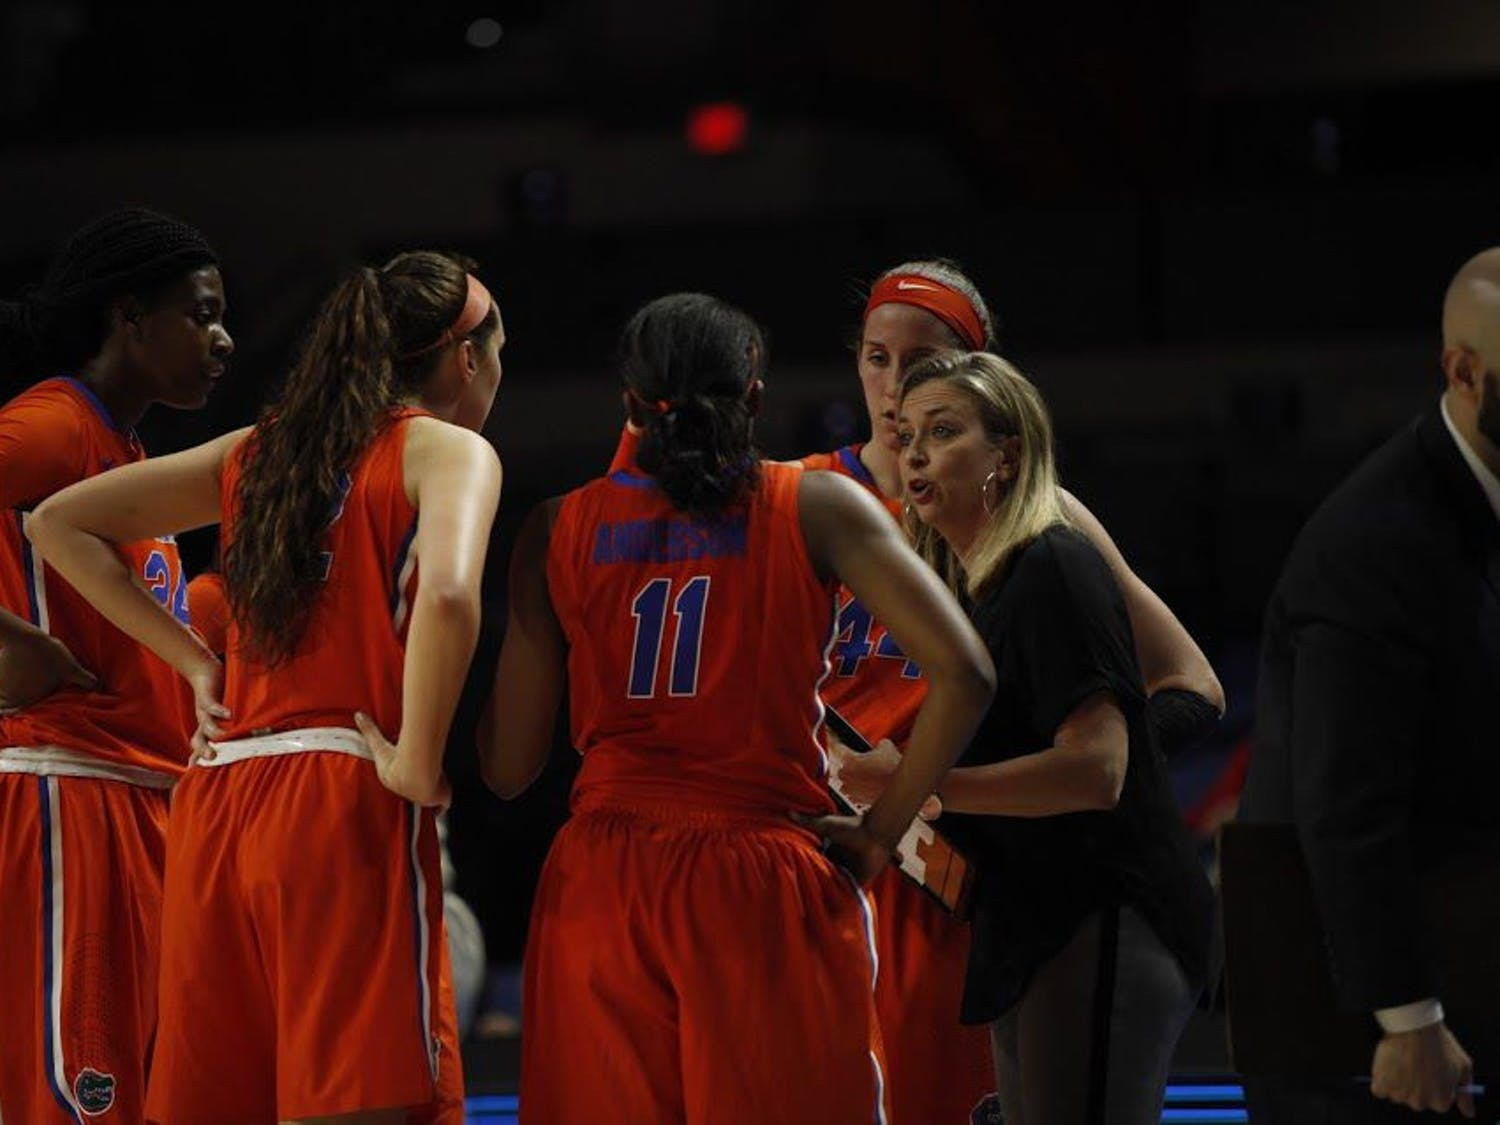 UF head coach Amanda Butler talks to her team during Florida's 84-75 loss to Ole Miss on Feb. 6, 2017, in the O'Connell Center.